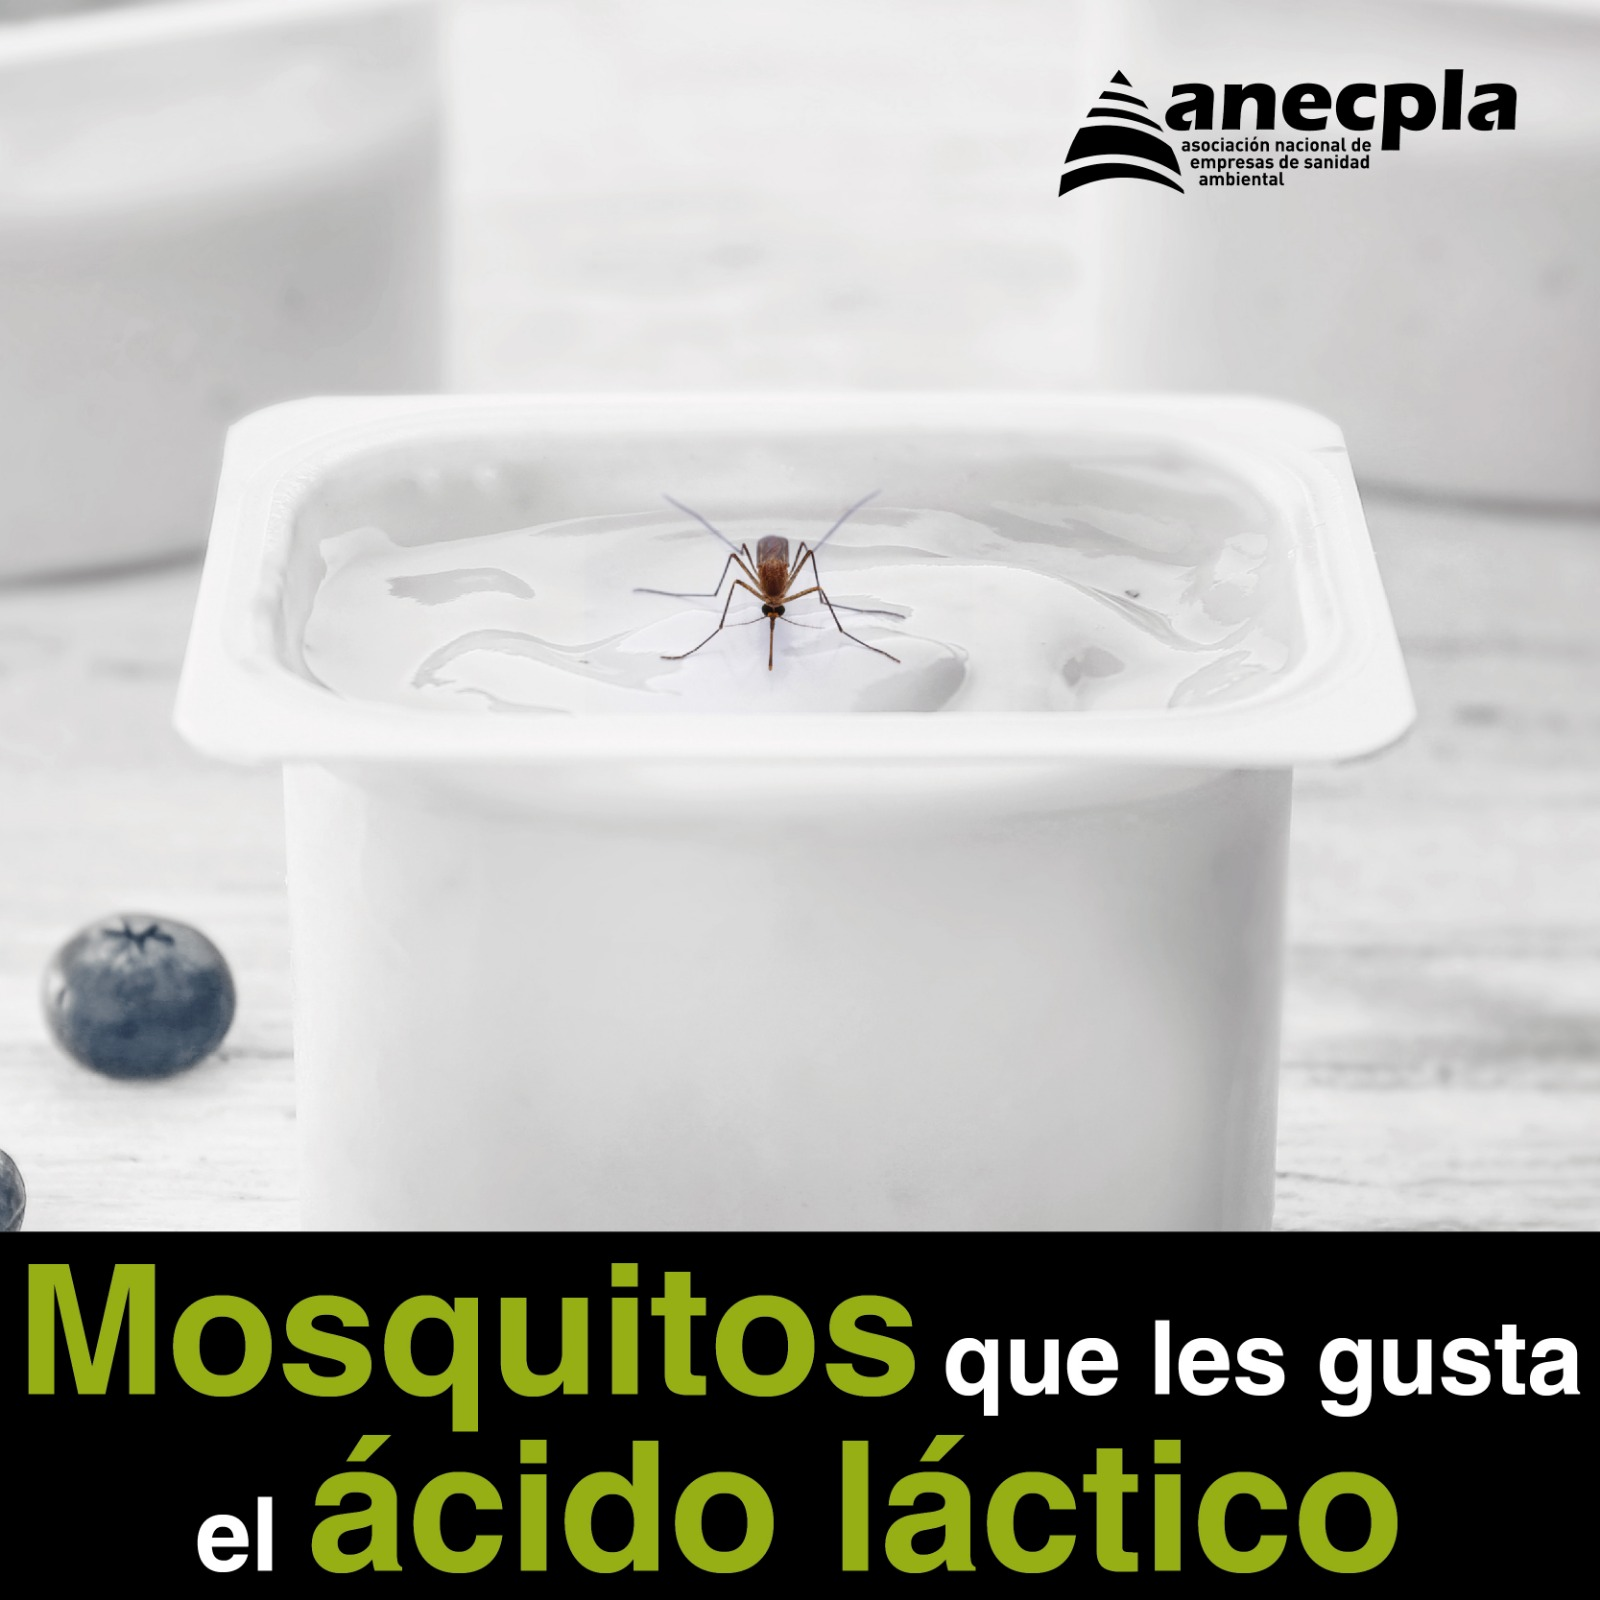 <p><strong>MOSQUITOS QUE LES GUSTA EL &Aacute;CIDO L&Aacute;CTICO</strong></p>